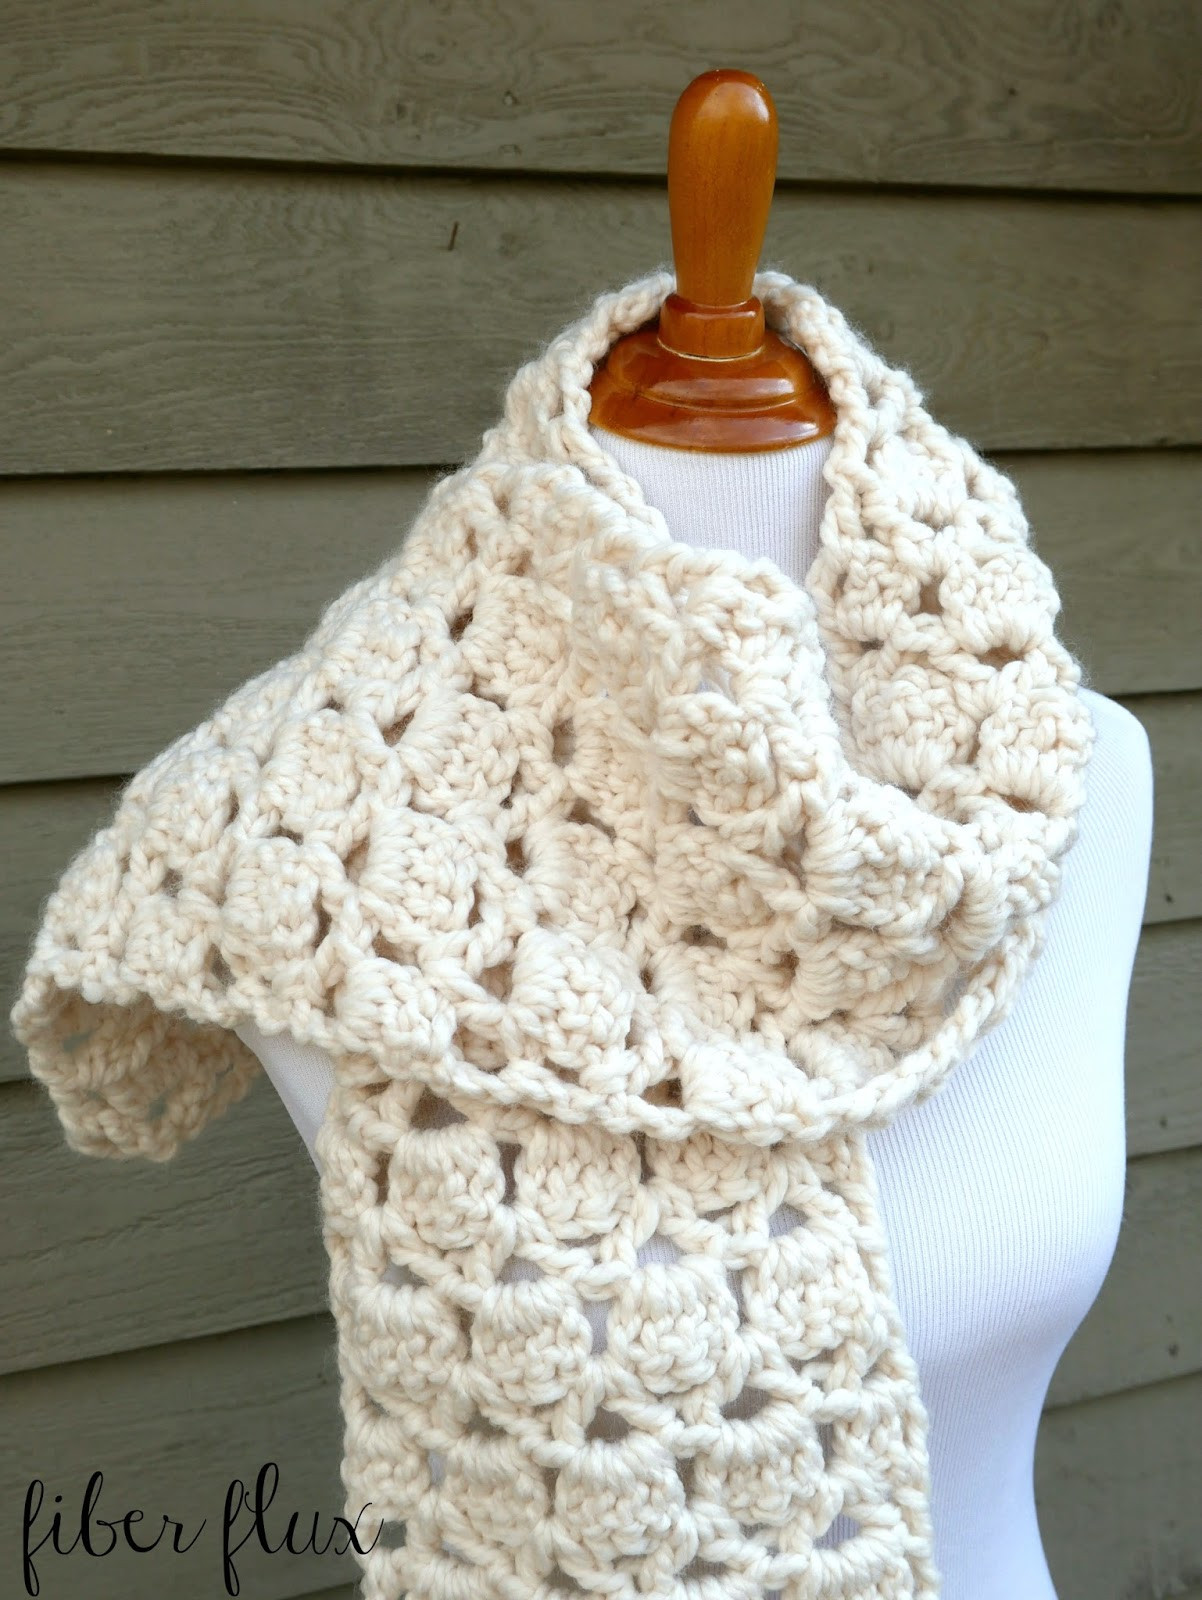 Bulky Yarn Crochet Patterns Elegant Bulky Yarn Crochet Patterns Scarf Of Charming 49 Images Bulky Yarn Crochet Patterns